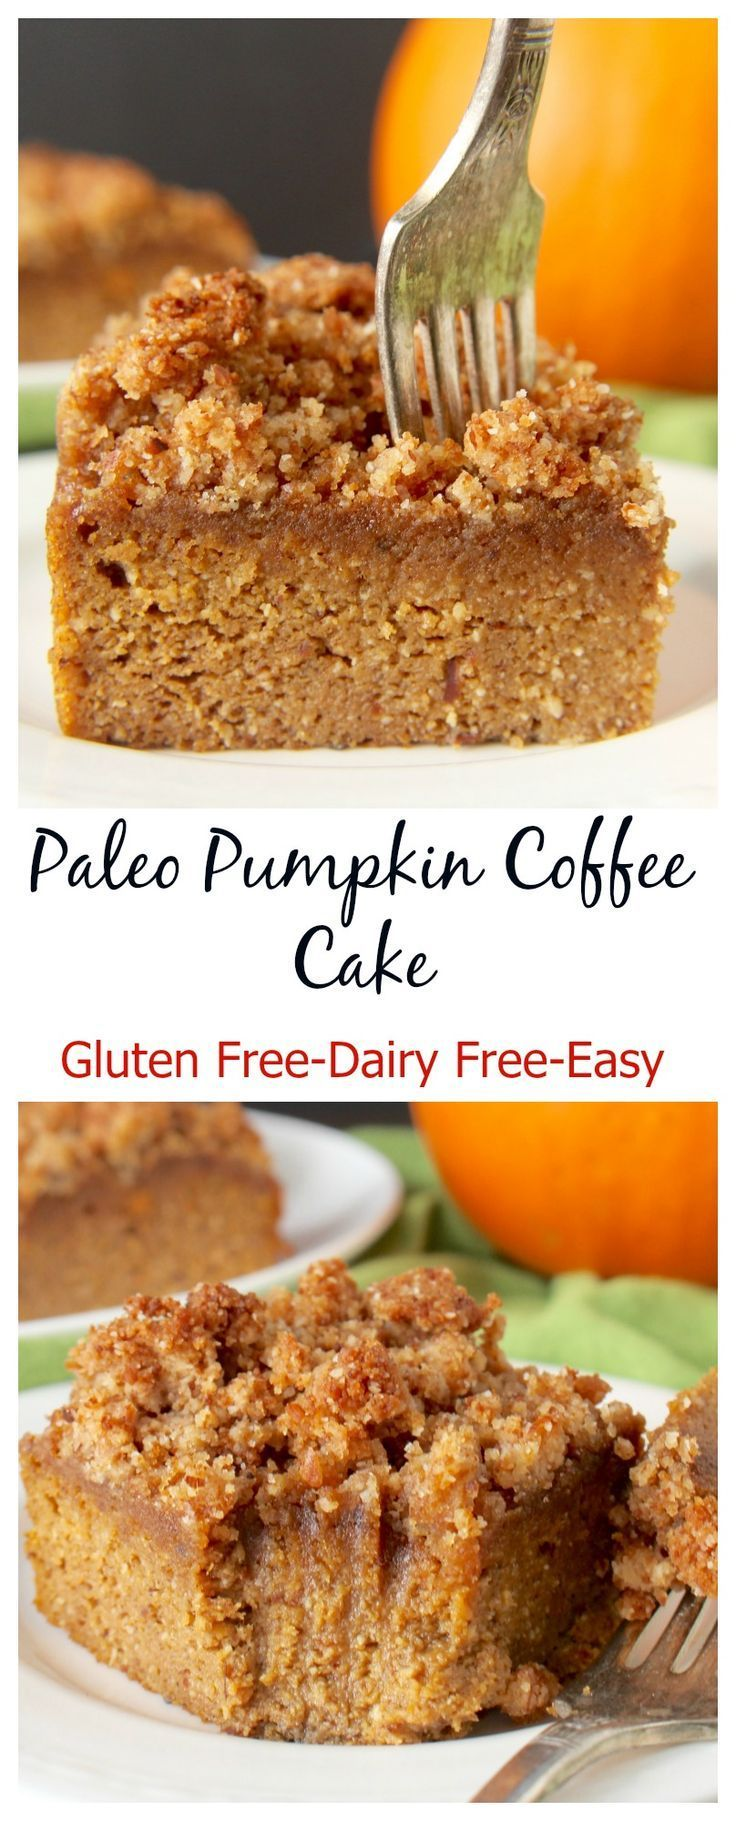 Looking for the perfect fall dessert? Try this Paleo Pumpkin Coffee Cake. It is just like a classic coffee cake with a moist and flavorful cake with a delicious crumb topping only healthier! It's so delicious you would not think it's good for you.